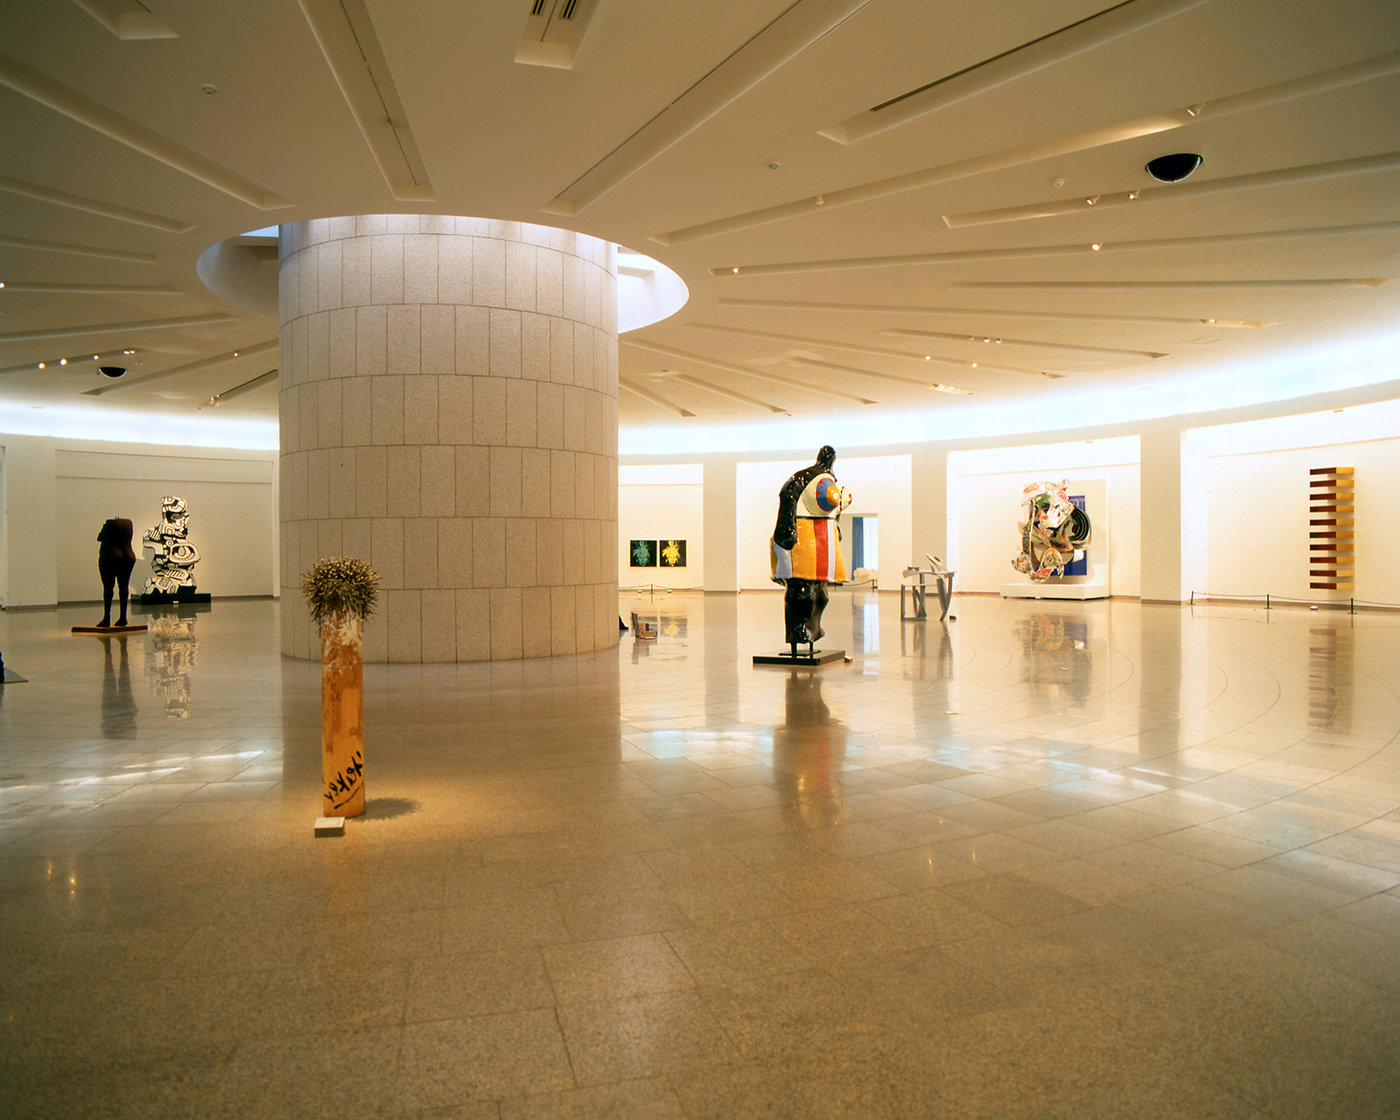 11 tskp korean ministry of culture national museum of contemporary art interior detail lighting and skylight round gallery space 1400 xxx q85